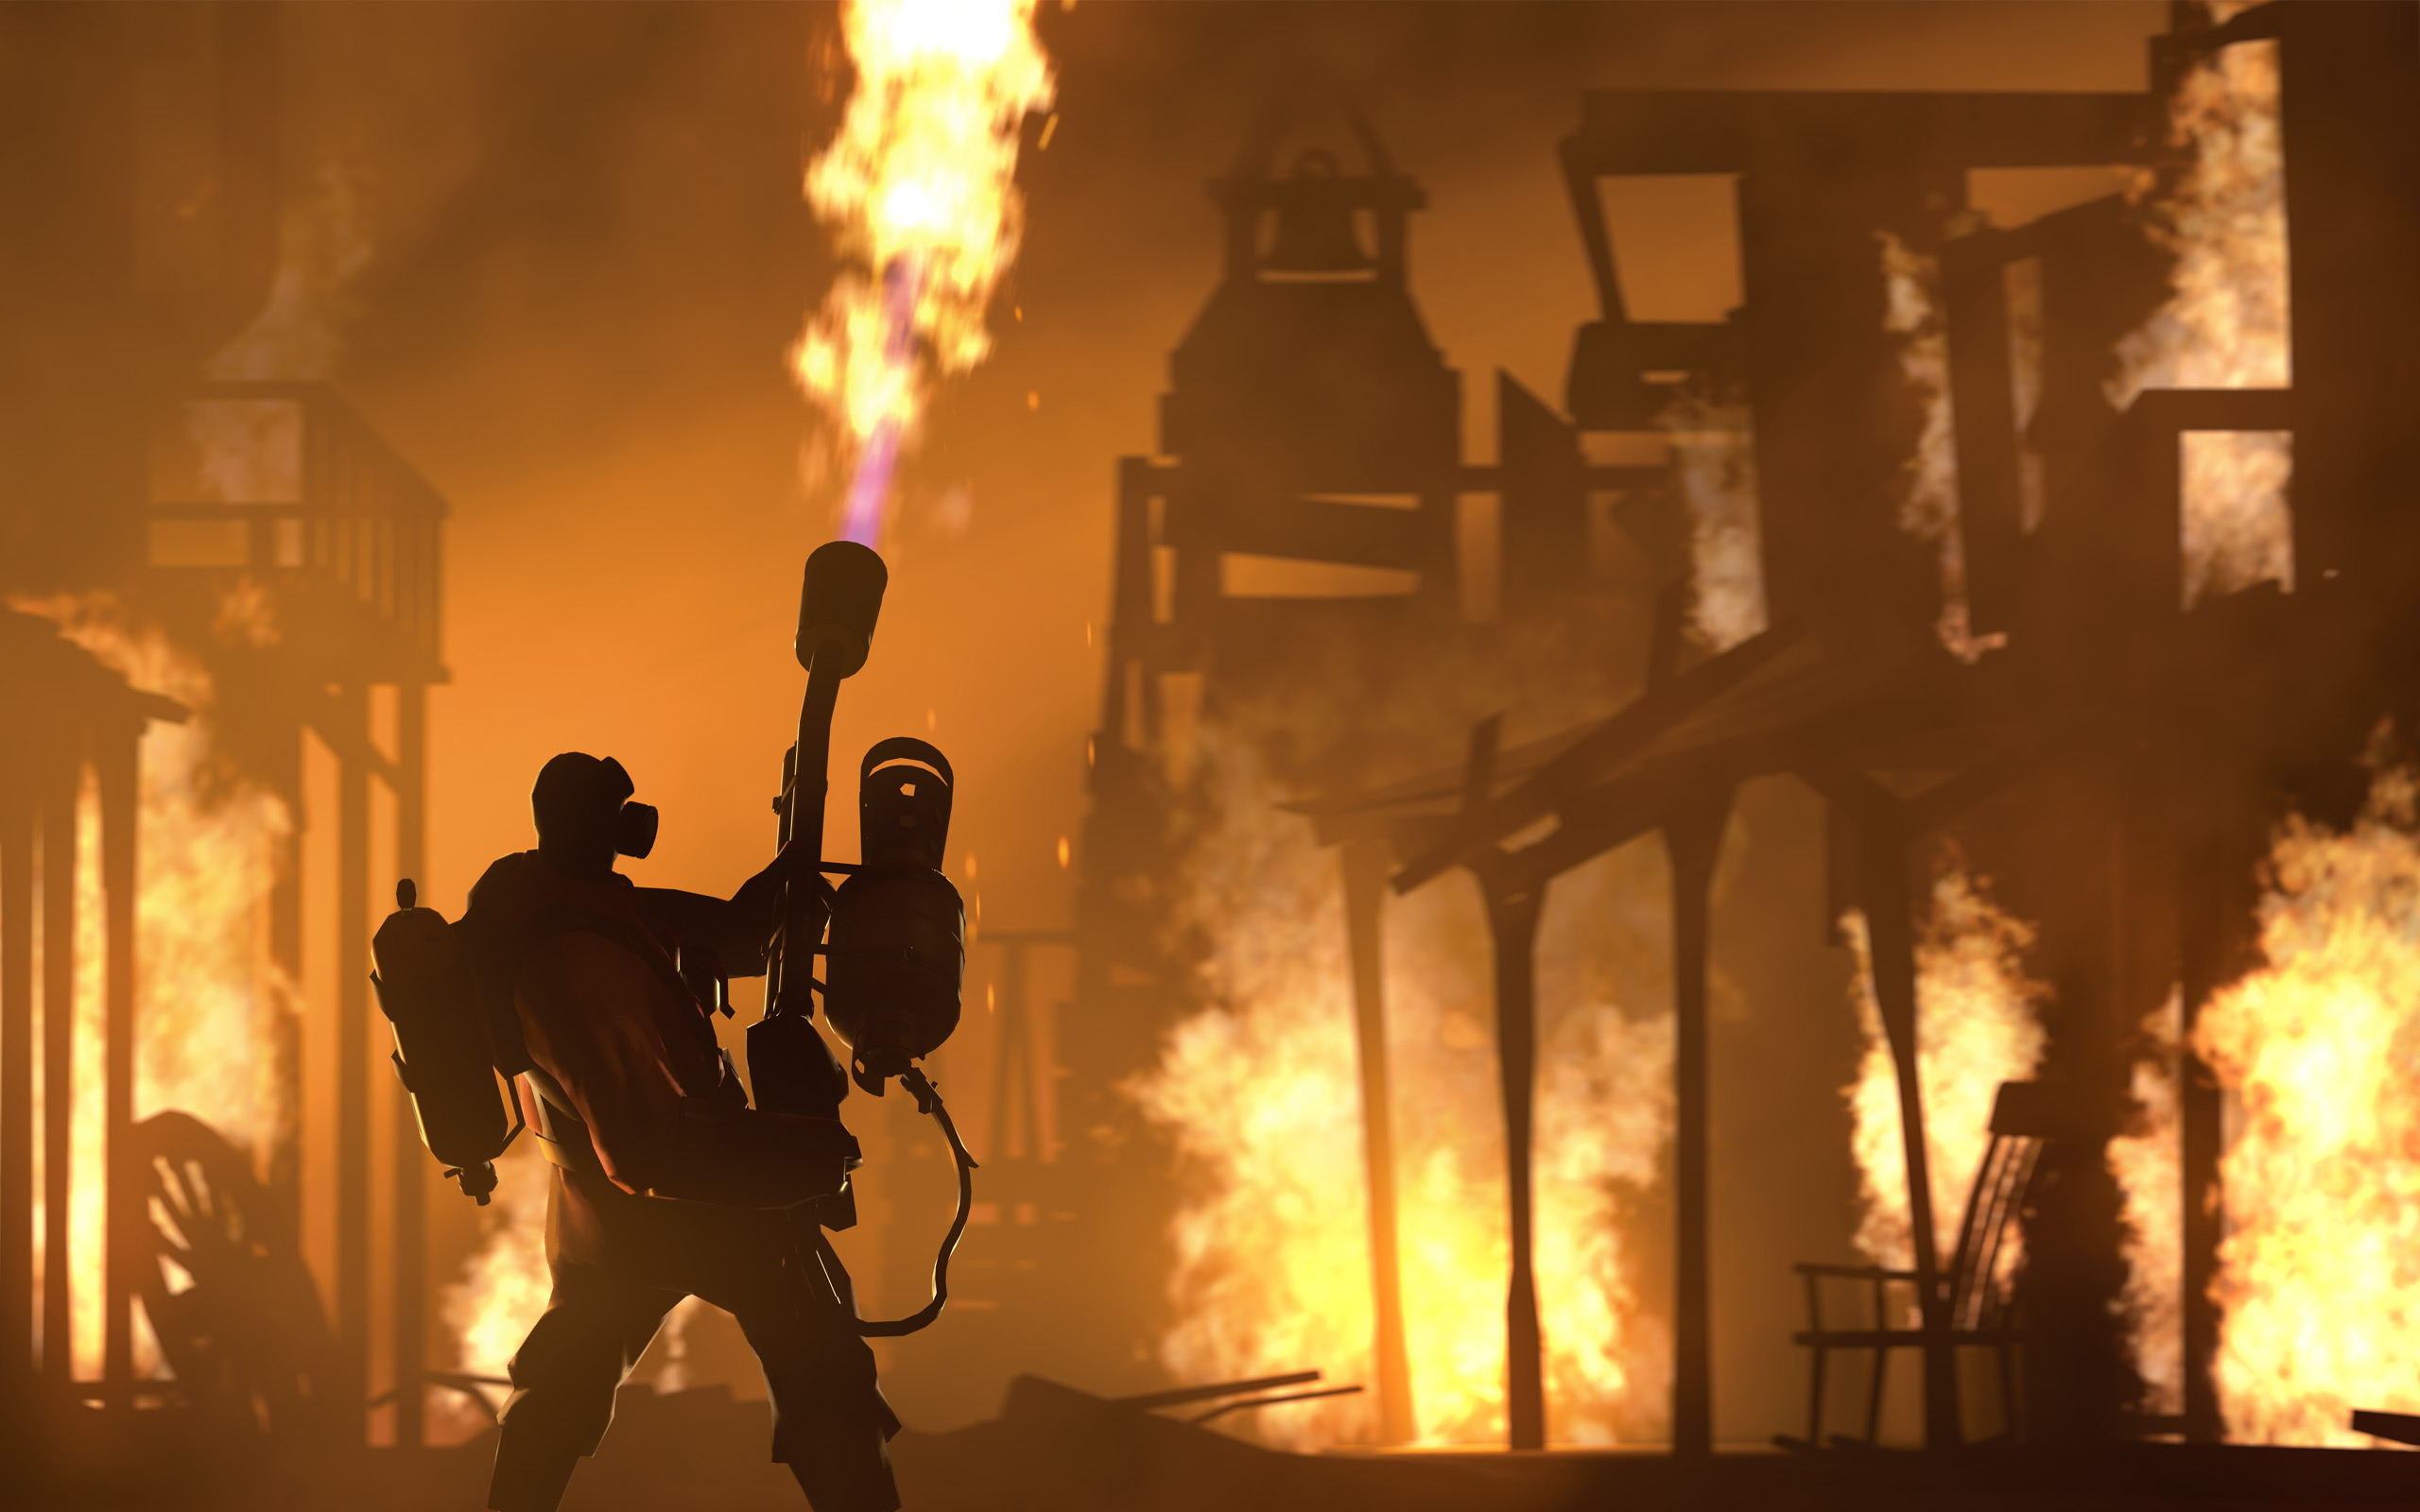 http://media.steampowered.com/apps/tf2/artwork/pyro_flames.jpg